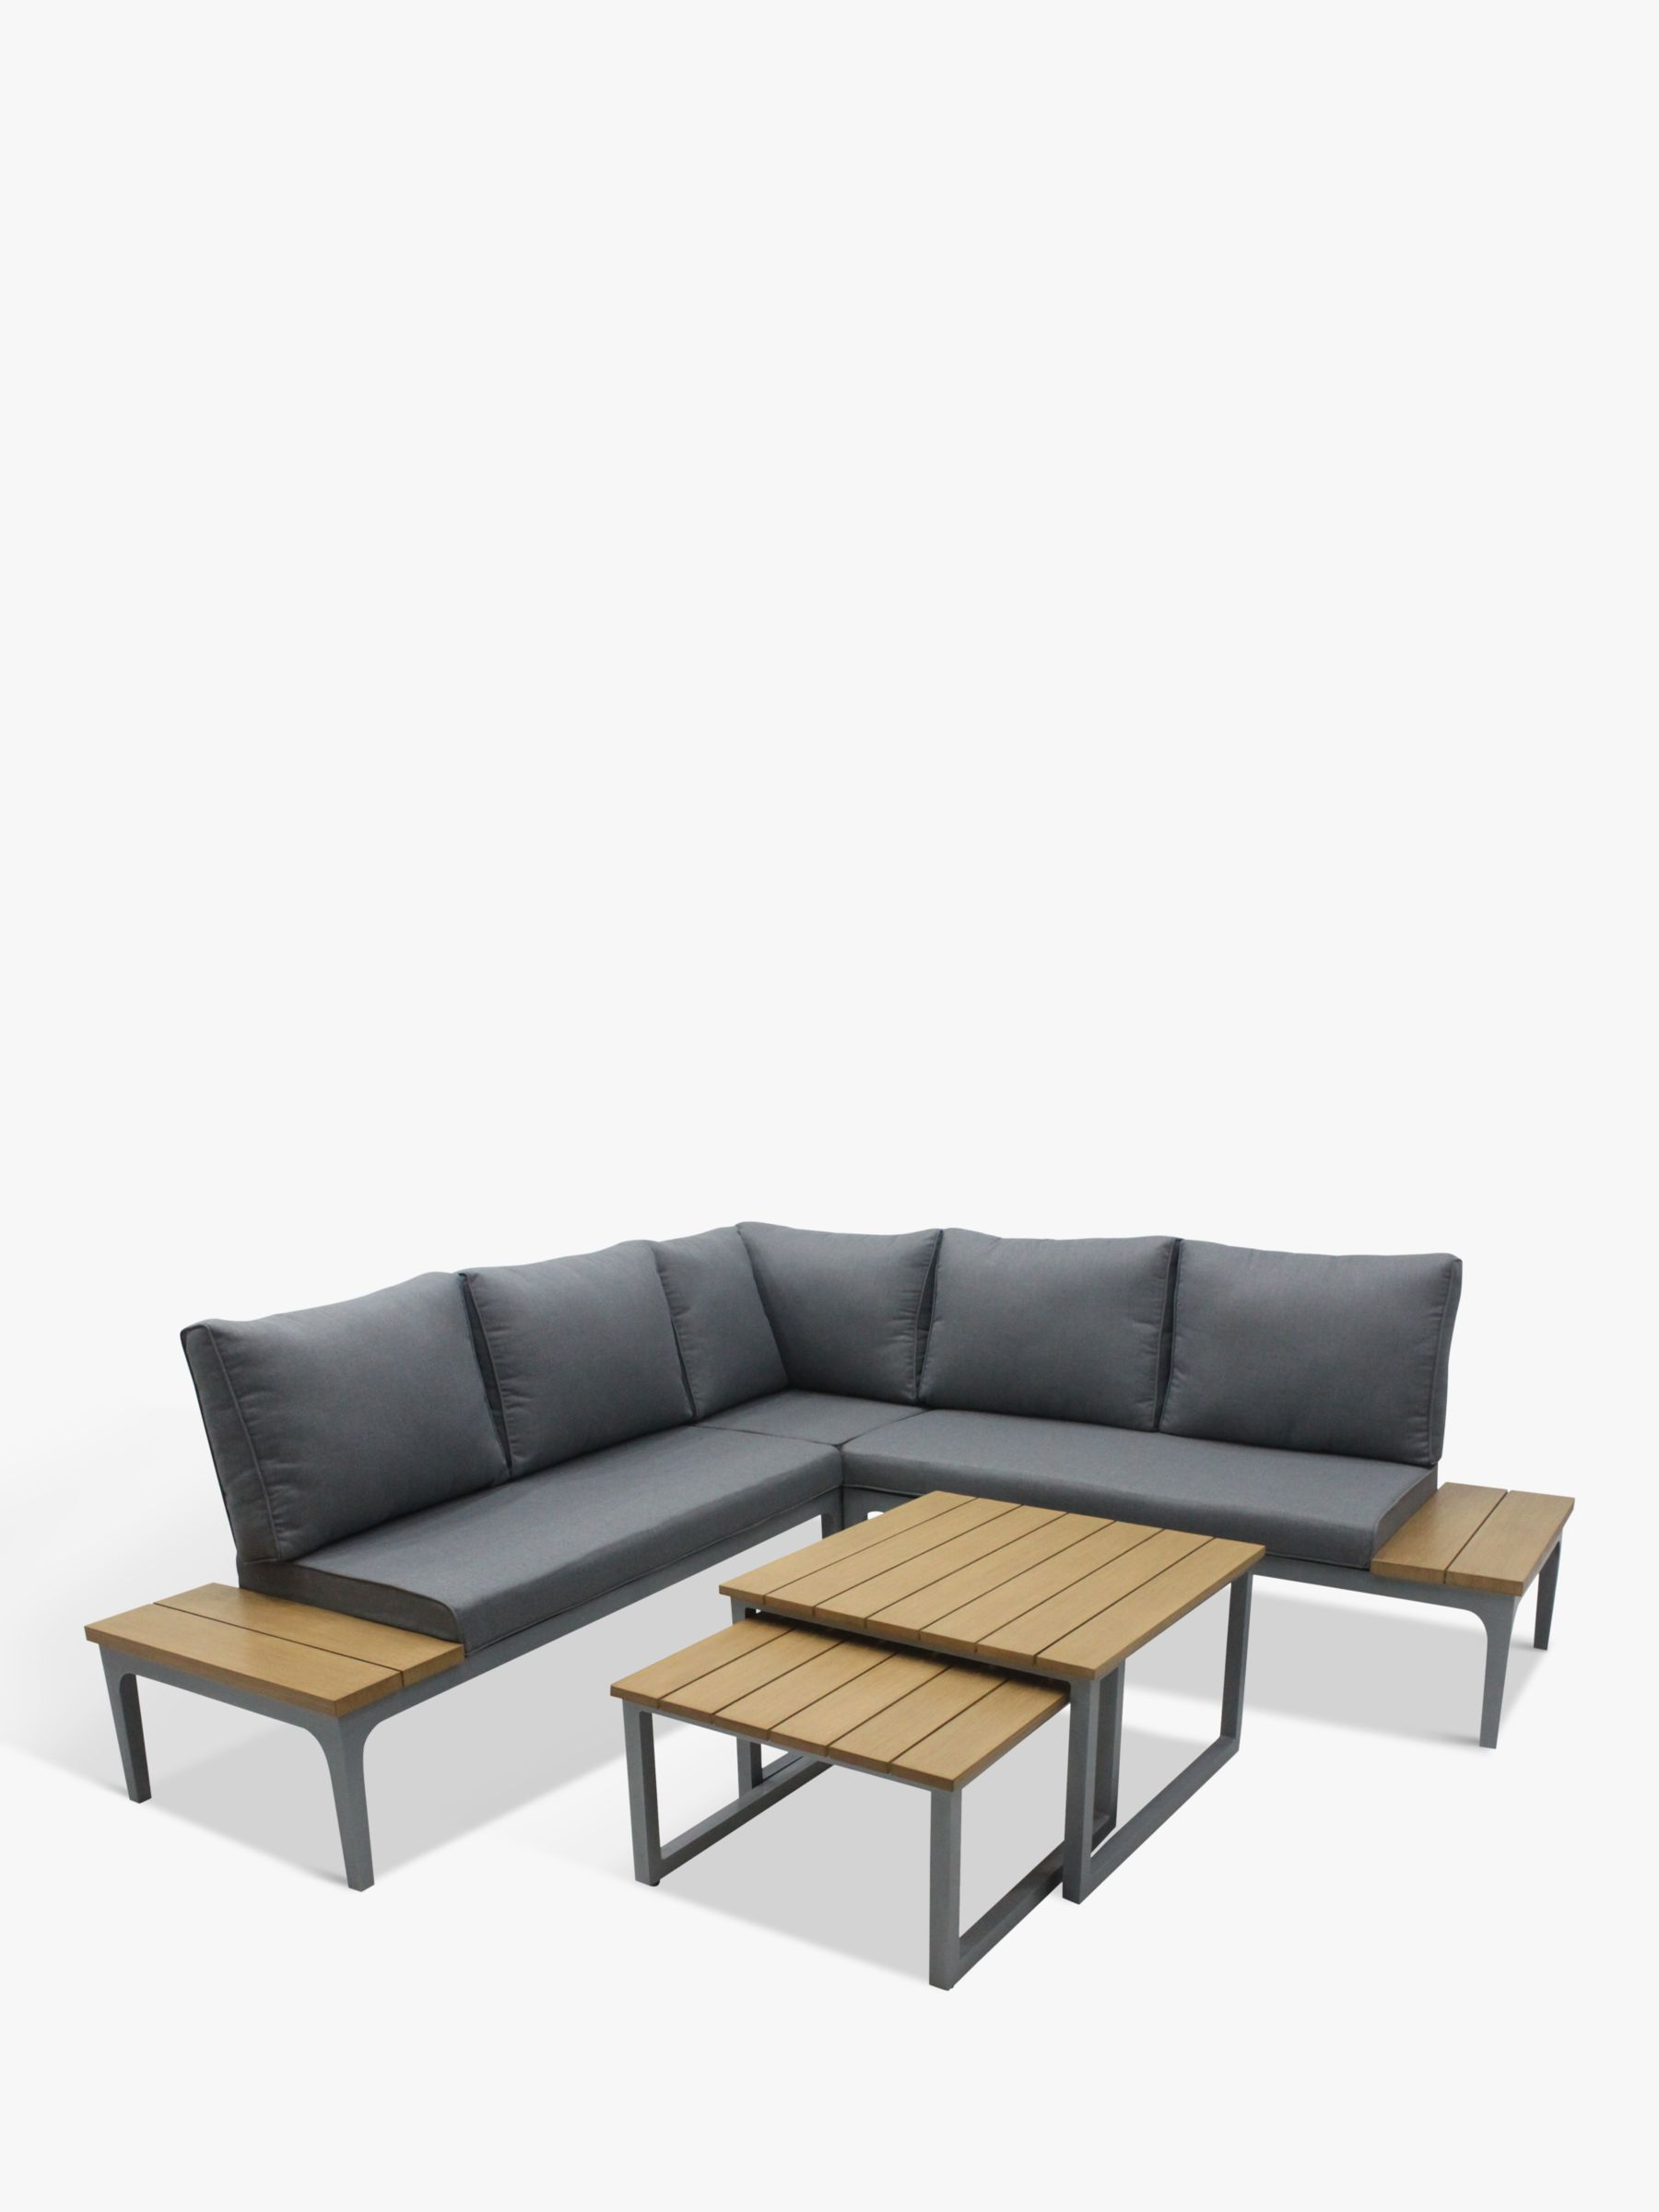 LG Outdoor LG Outdoor Siena 5-Seat Modular Garden Lounging Nested Tables & Chairs Set, Grey